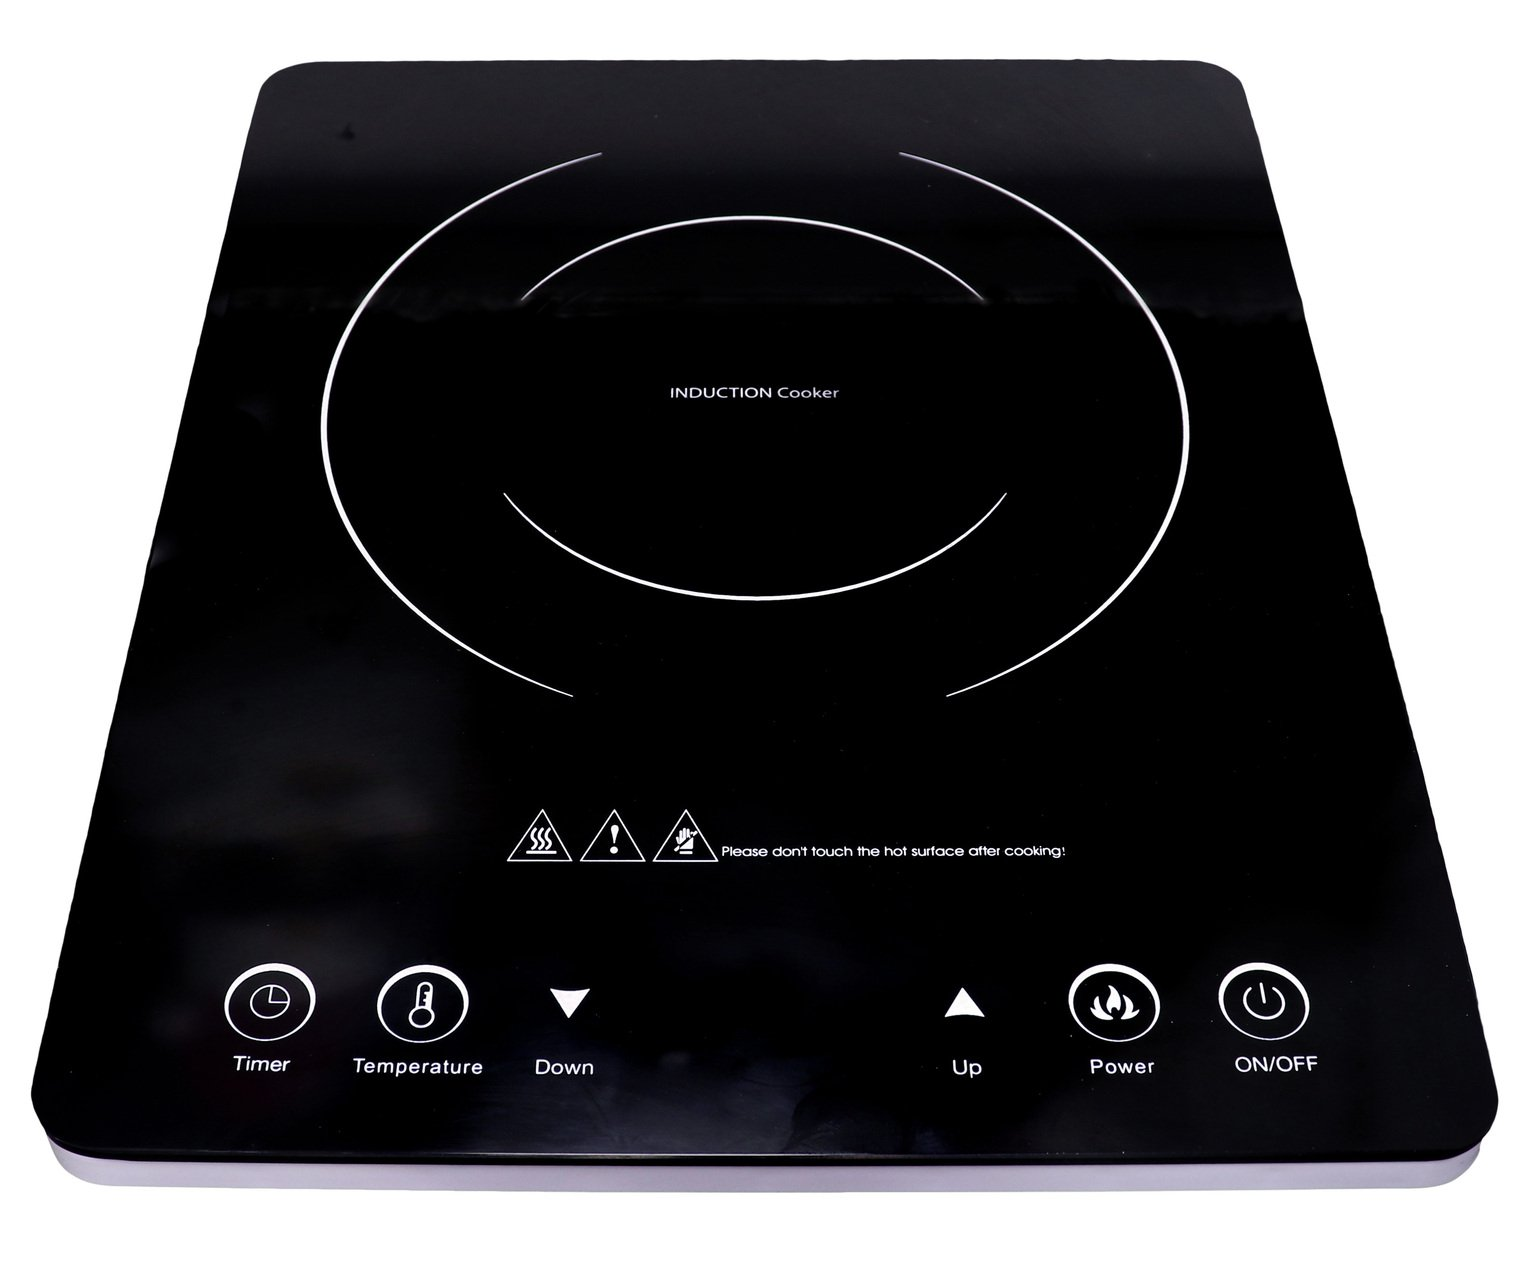 Leisurewize Low Wattage Induction Cooker